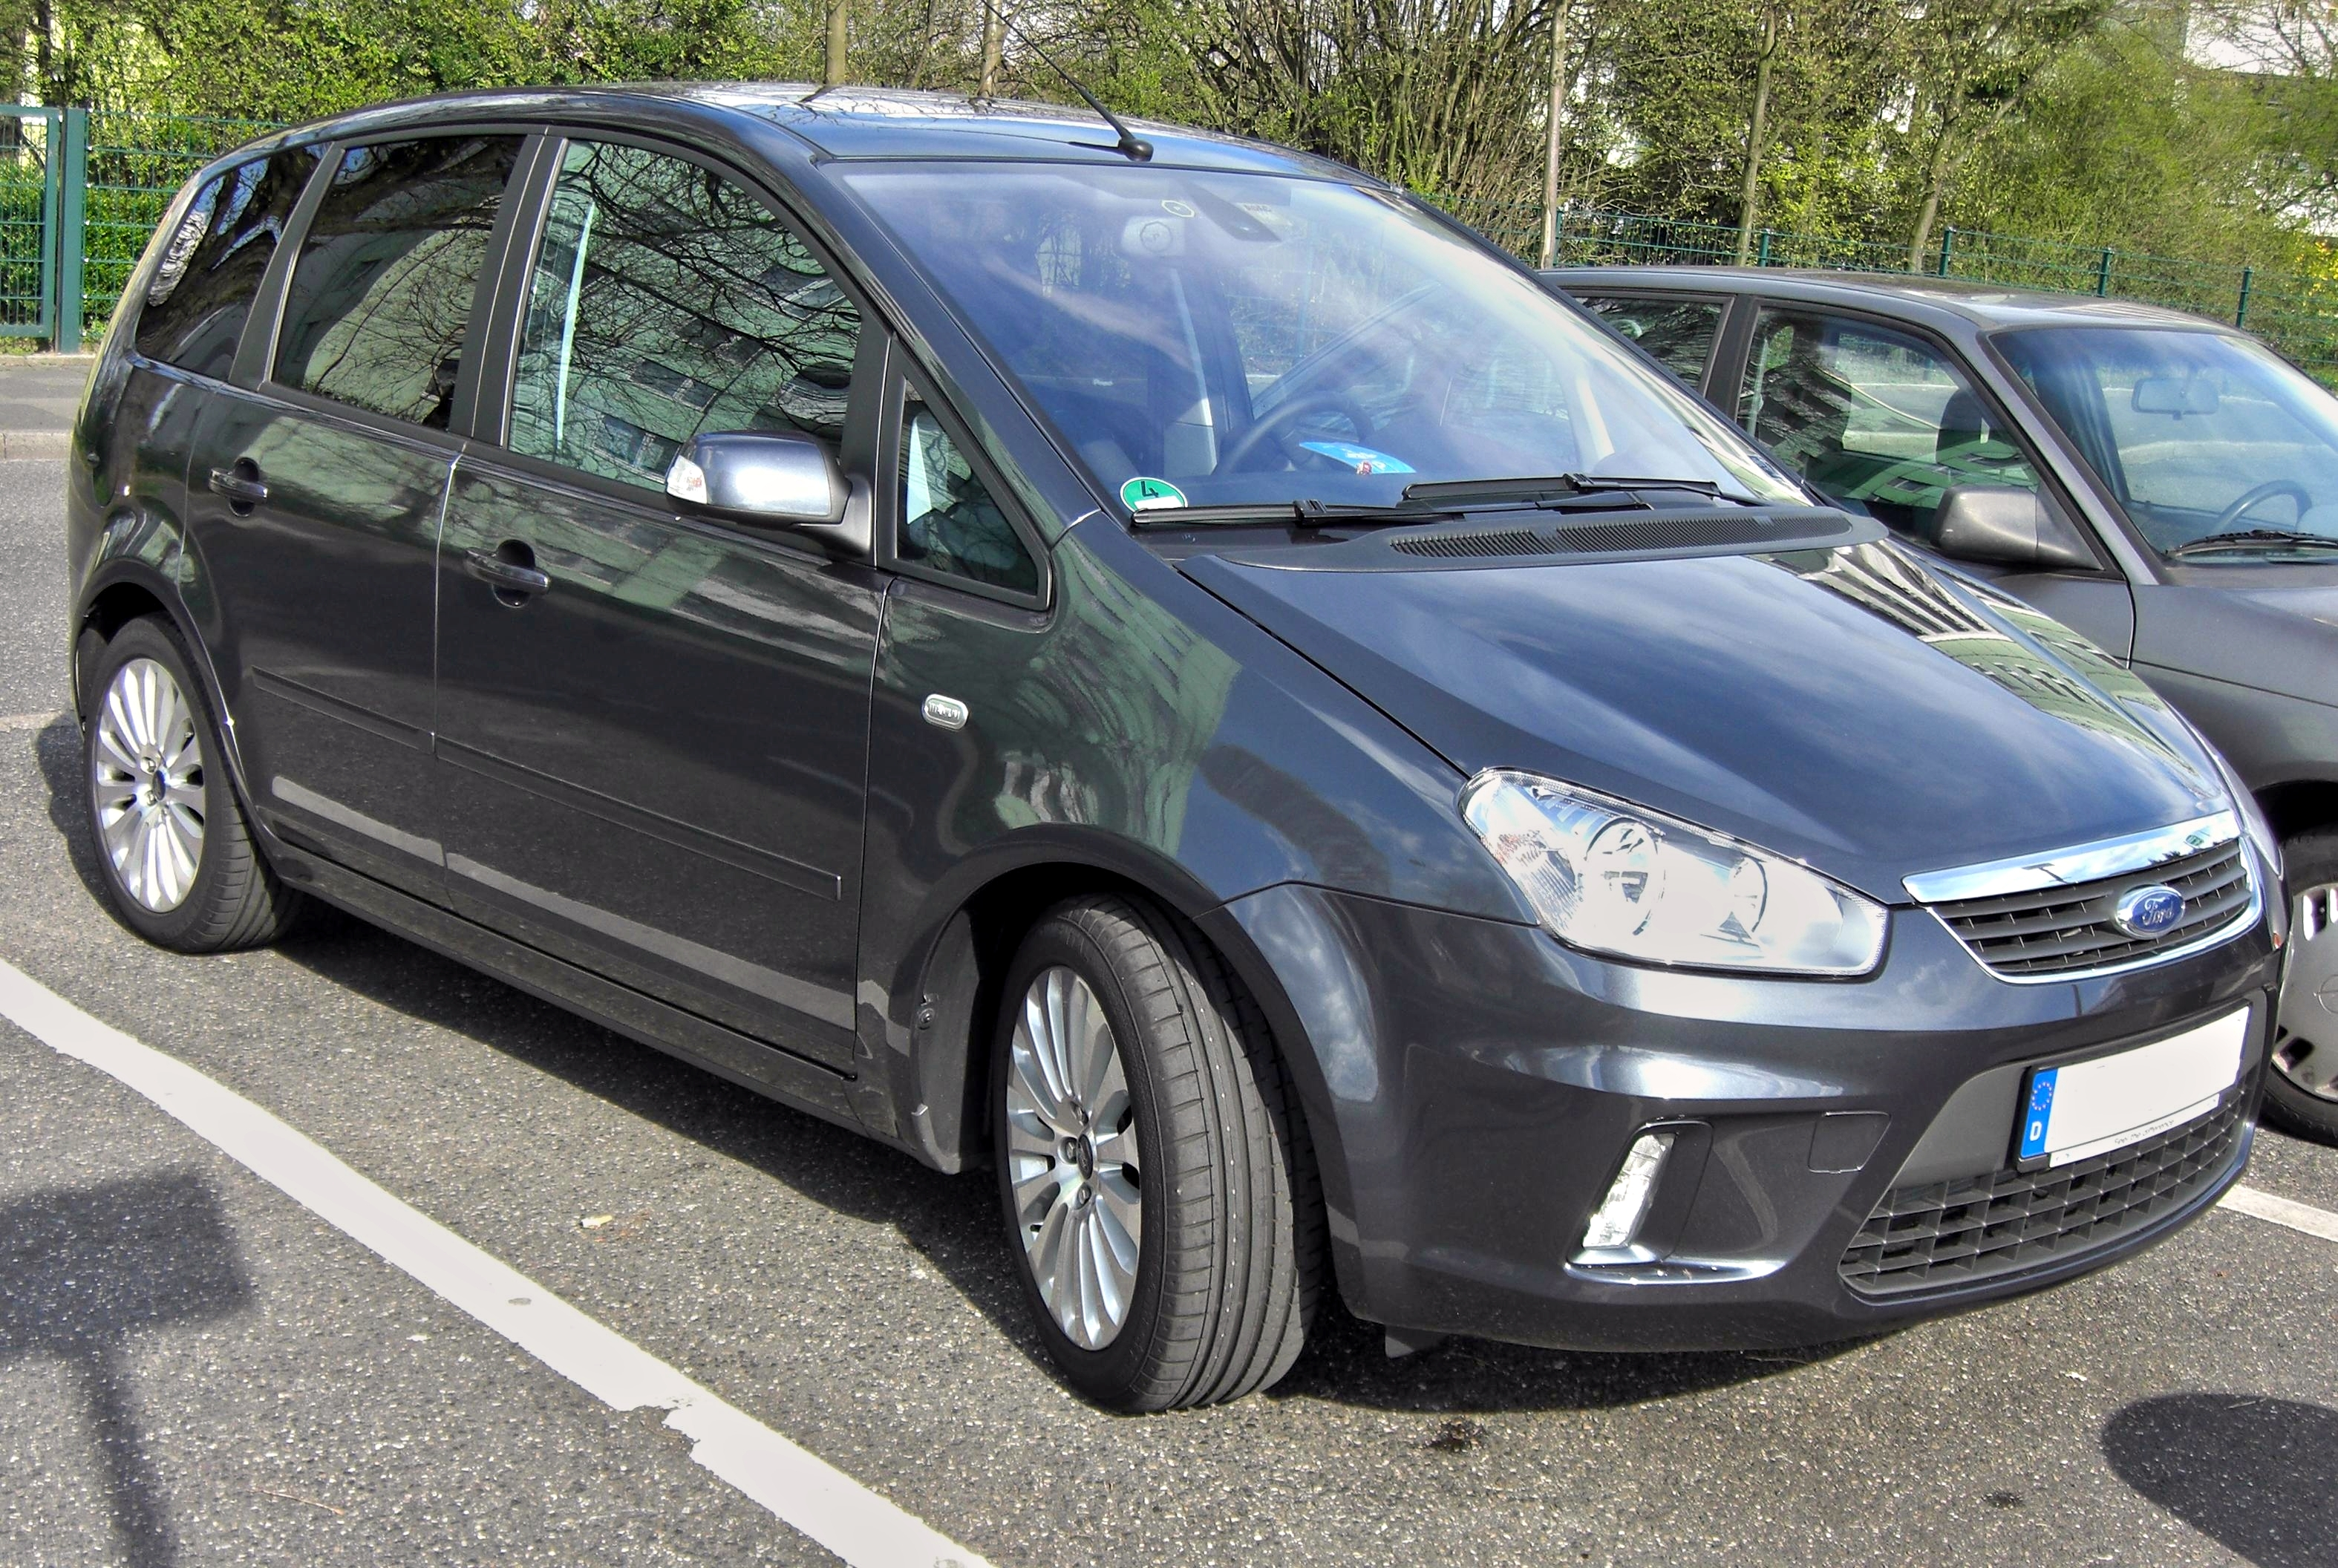 Ford C-Max - Wikipedia, the free encyclopedia